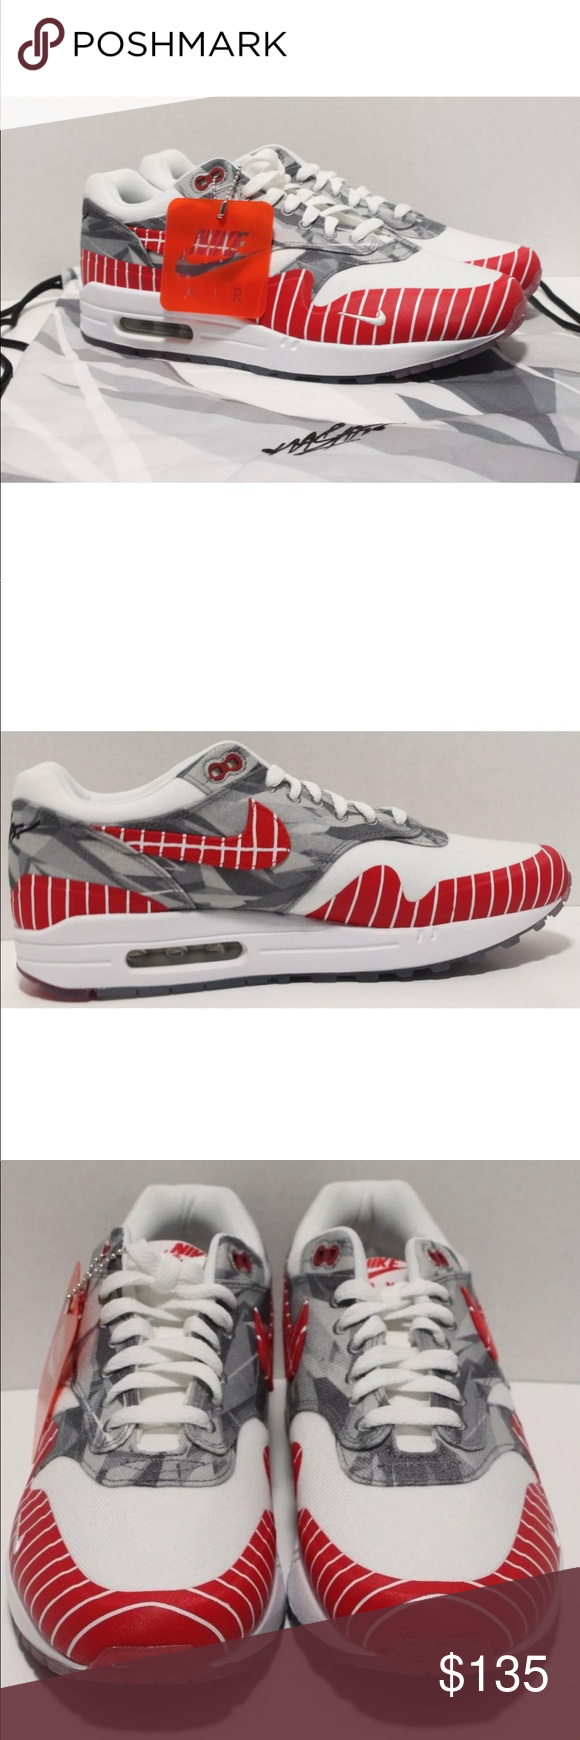 2b9dc27a4d4 Nike Air Max 1 LHM Latino Heritage Month Size 9.5 100% Authentic Condition   New Without Box